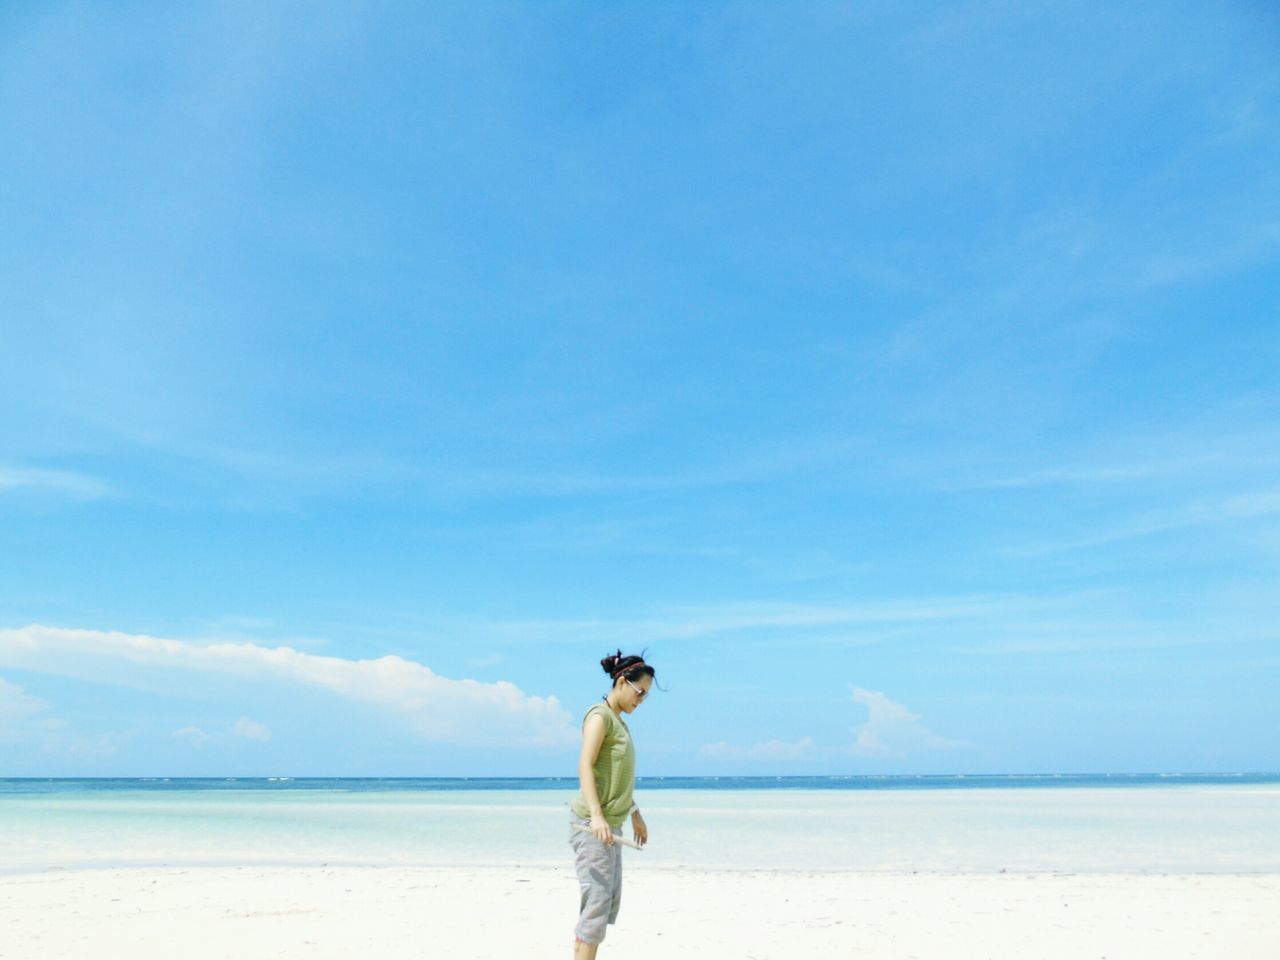 Low tide Sea Beach Water Sky Blue Horizon Over Water One Person Day Full Length Nature One Woman Only Outdoors Leisure Activity Scenics Beauty In Nature Vacations People The Great Outdoors With Adobe Beautiful Summer Travel Destinations Traveling Travel Sumba Timur Village